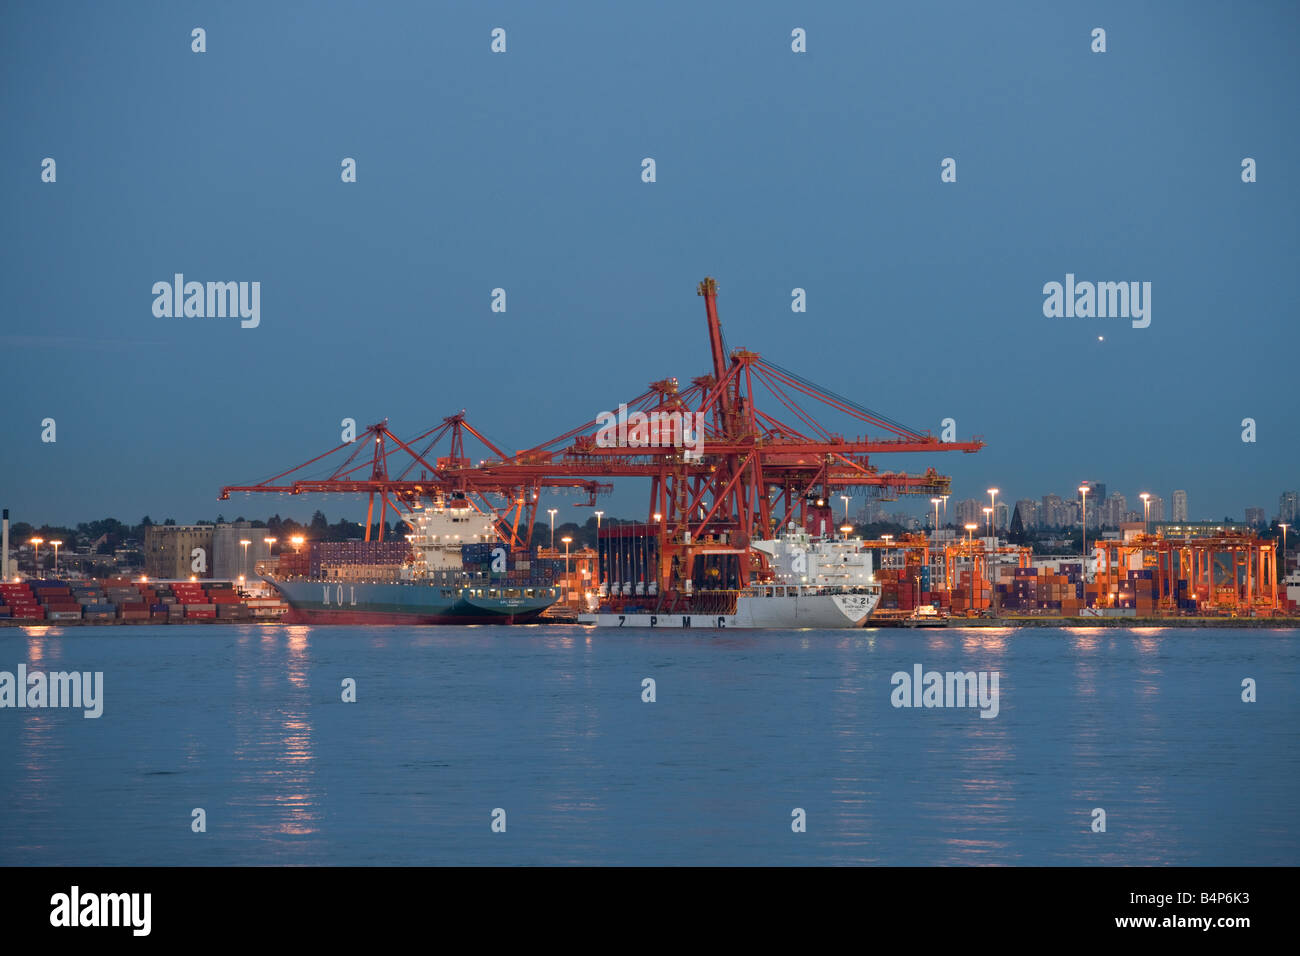 APL Earnest and Zhen Huazi container ships at dock in Vancouver harbor, British Columbia, Canada - Stock Image